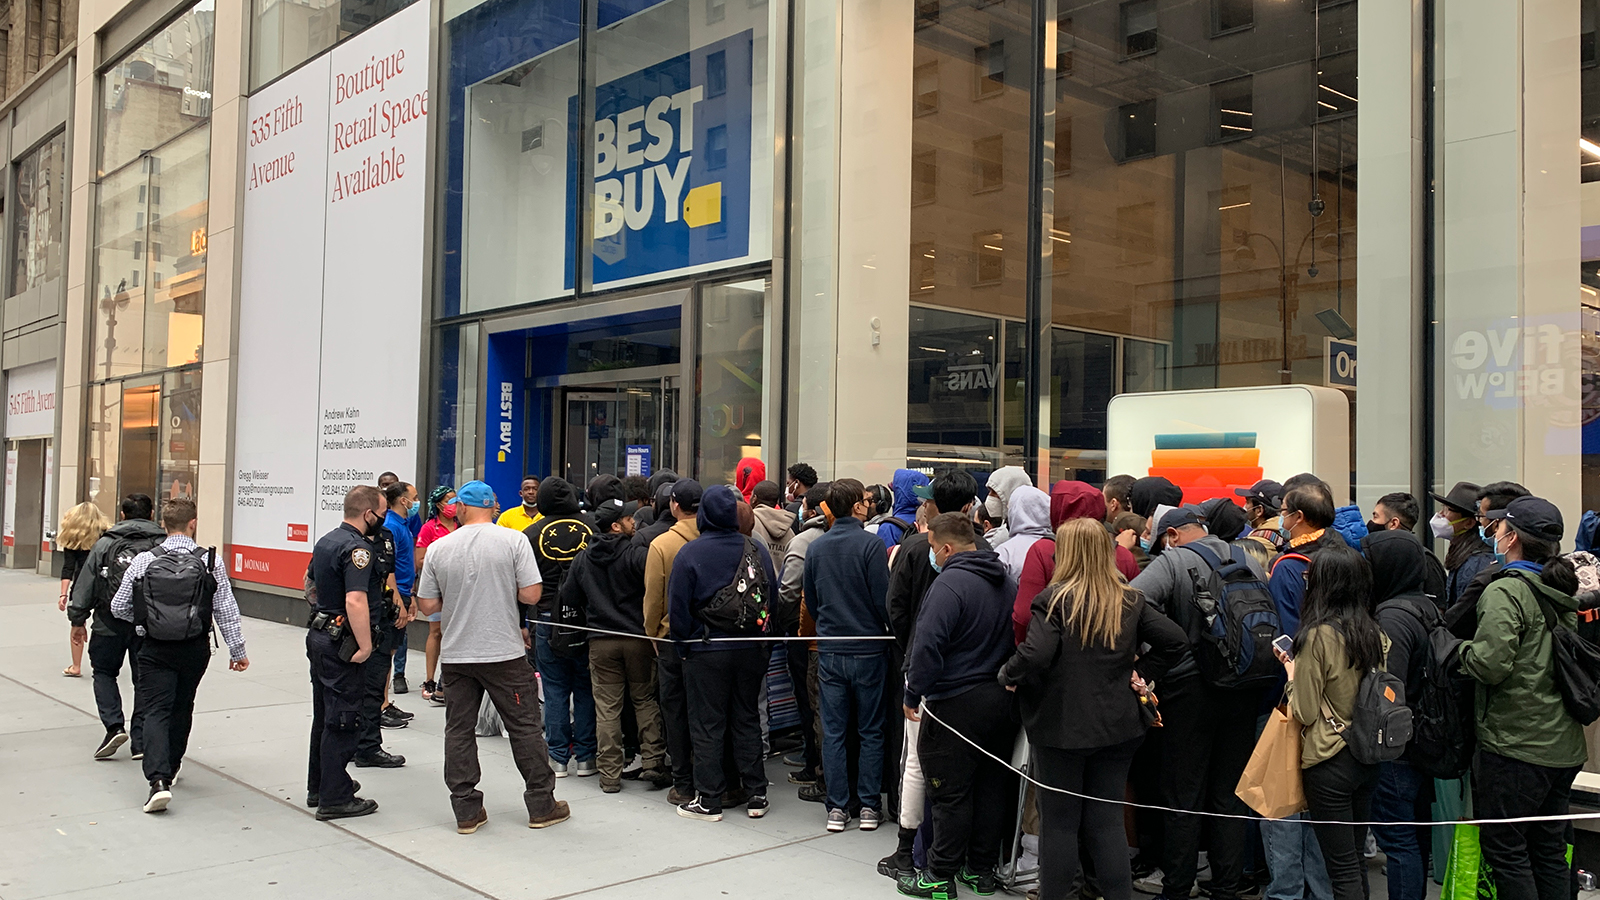 Customers wait in line outside a New York City Best Buy for a chance to buy an RTX 3080 Ti